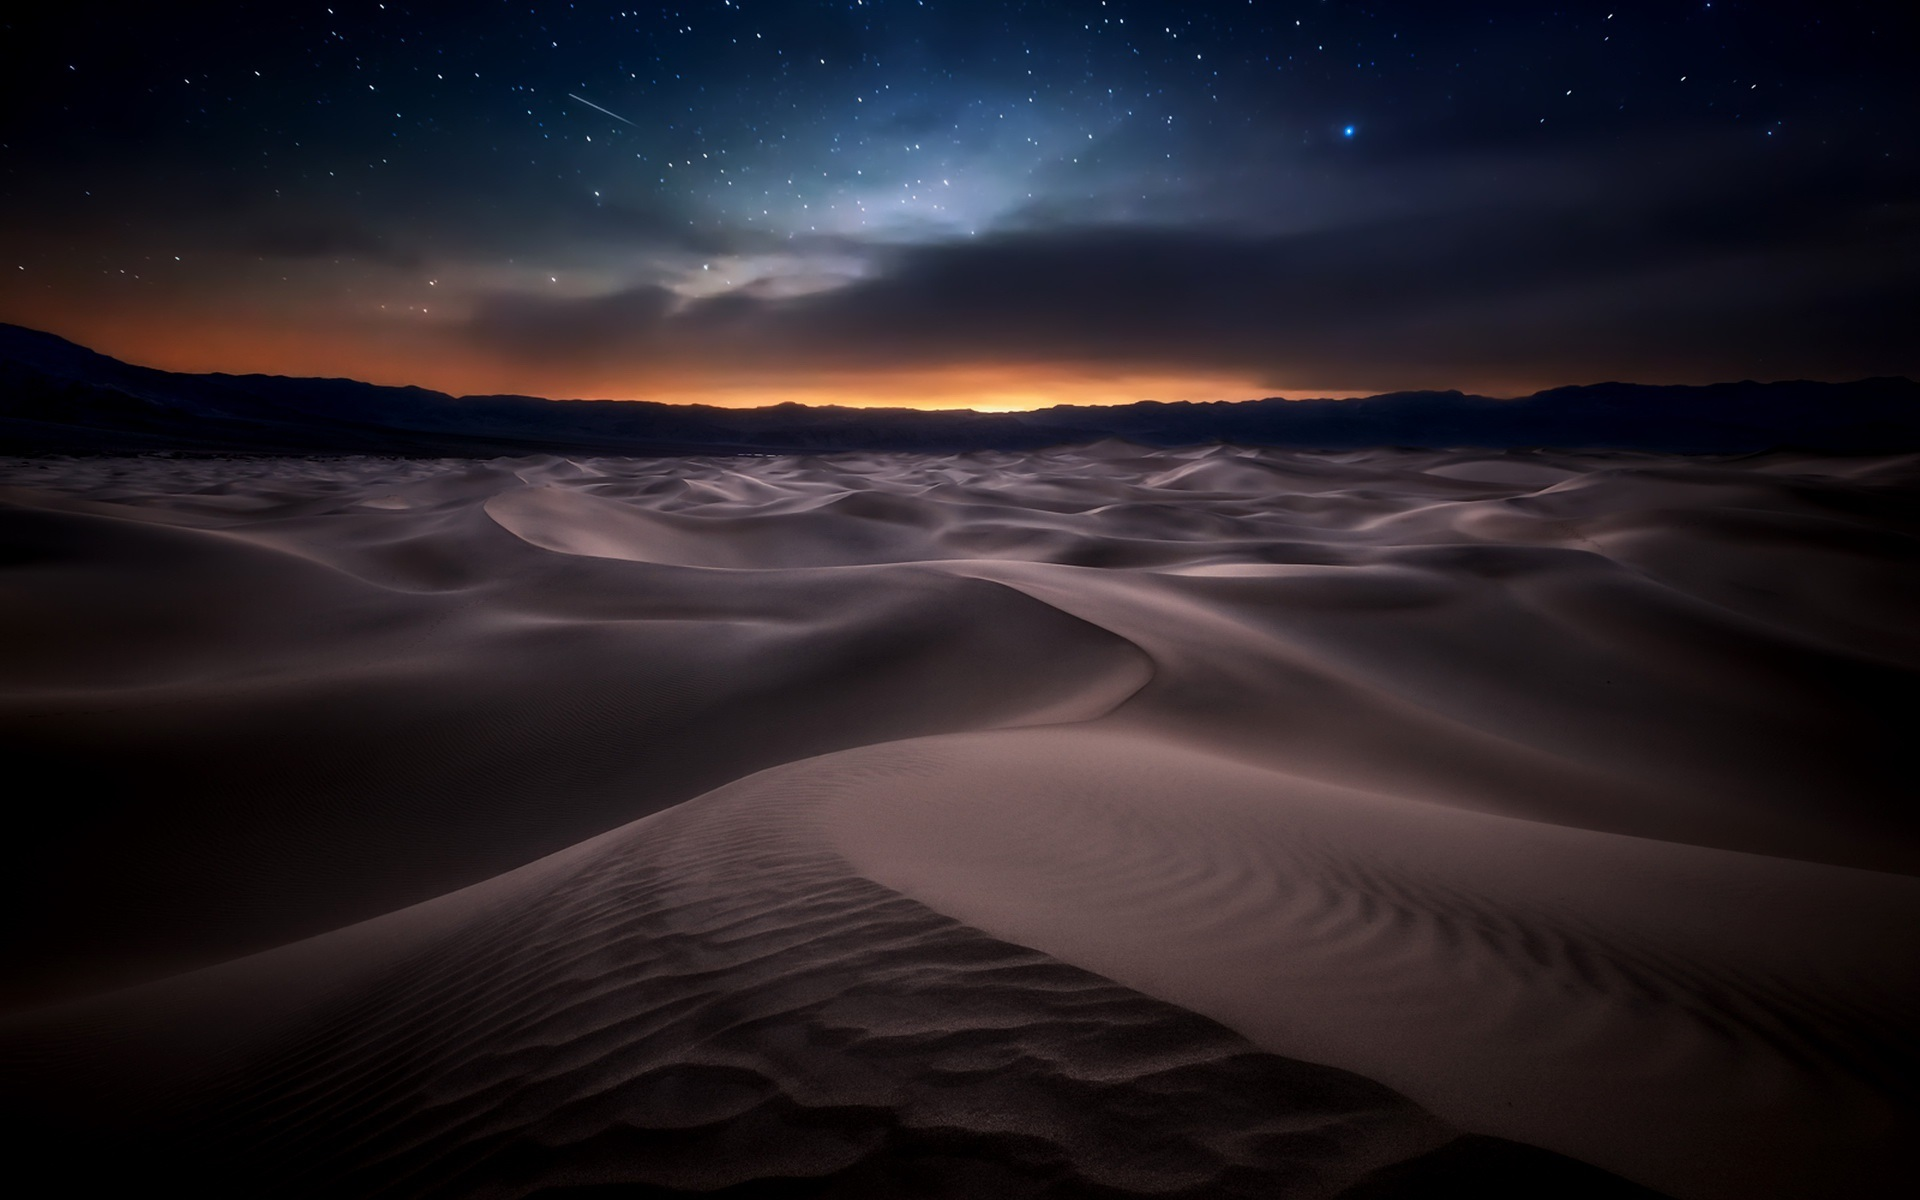 Wallpaper Desert, Night, Starry 1920x1200 HD Picture, Image